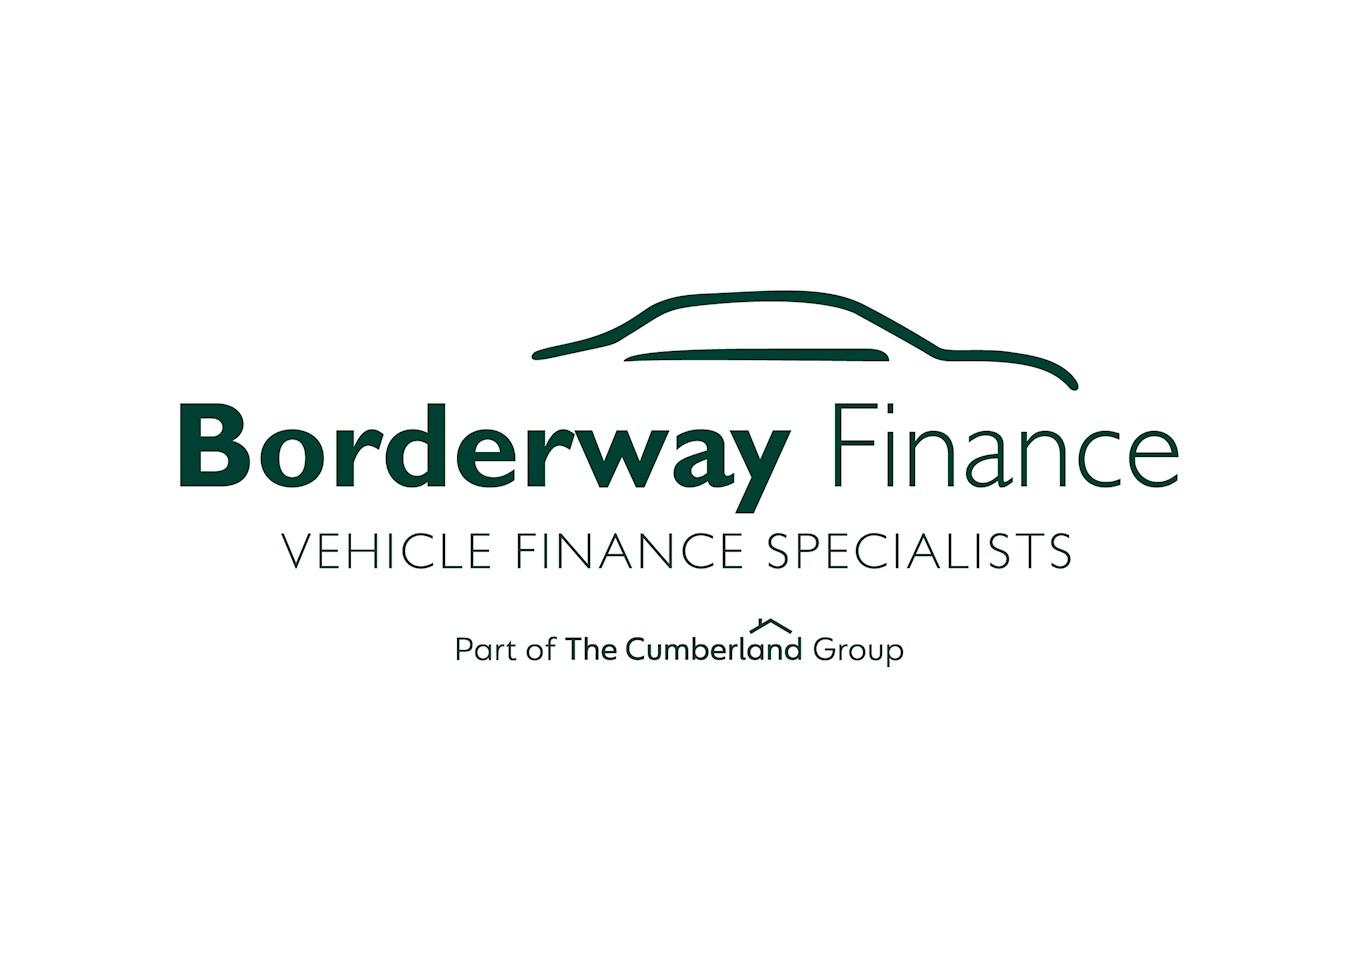 borderway-logo 2017 (2).jpg